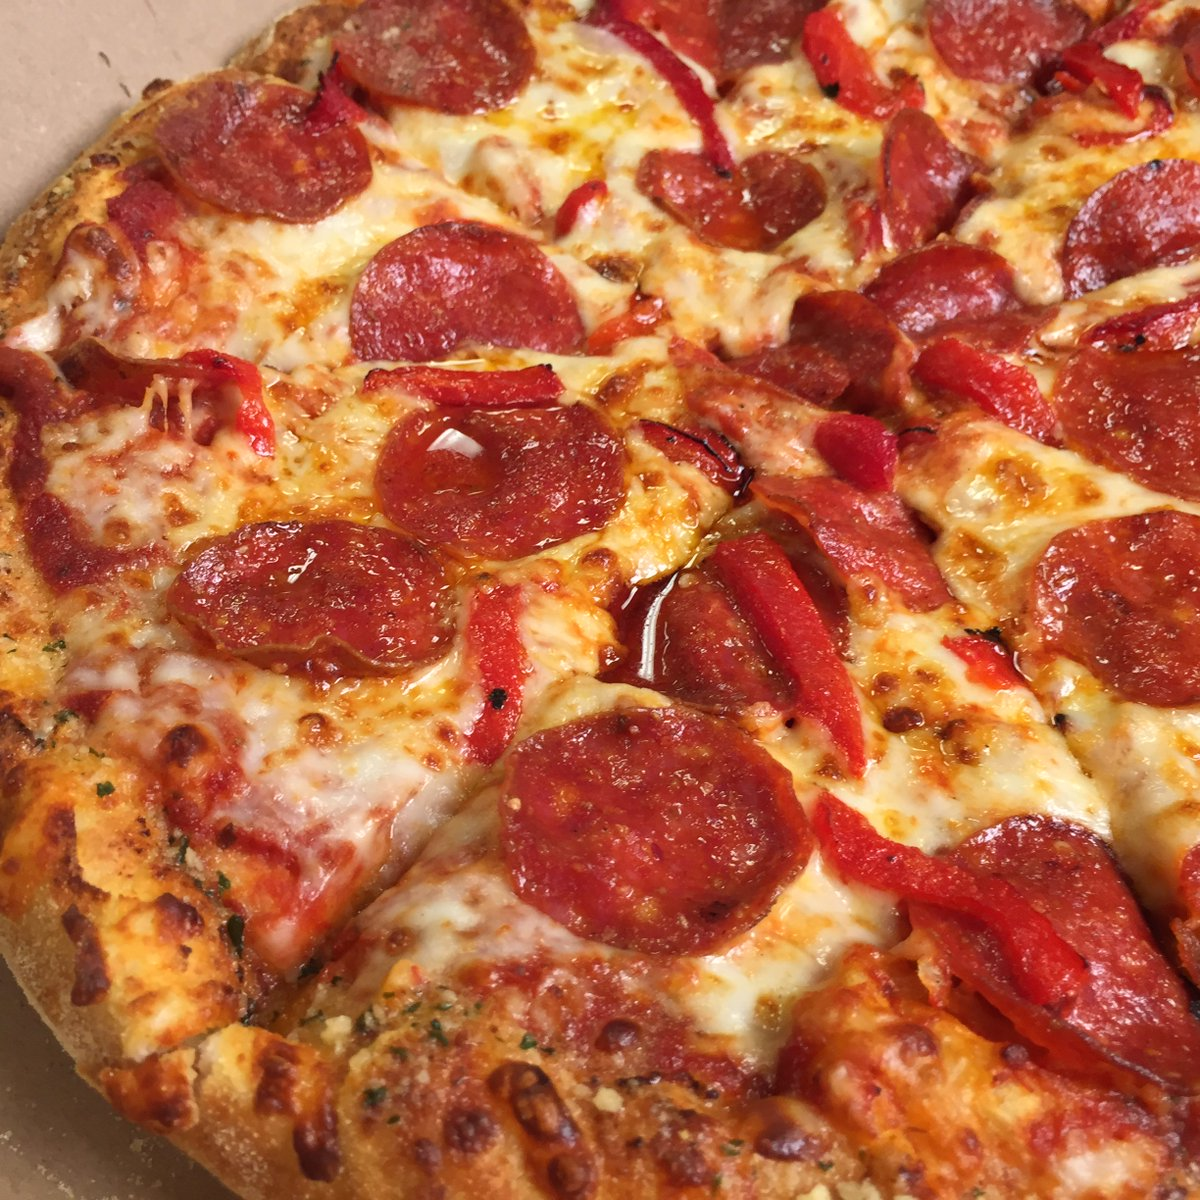 Domino S Pizza On Twitter Grab A Slice Of This Deal Large 2 Topping Pizzas For Just 5 99 Each When You Order Online Now Through 2 19 Carryout Only Https T Co Sghjq8razq